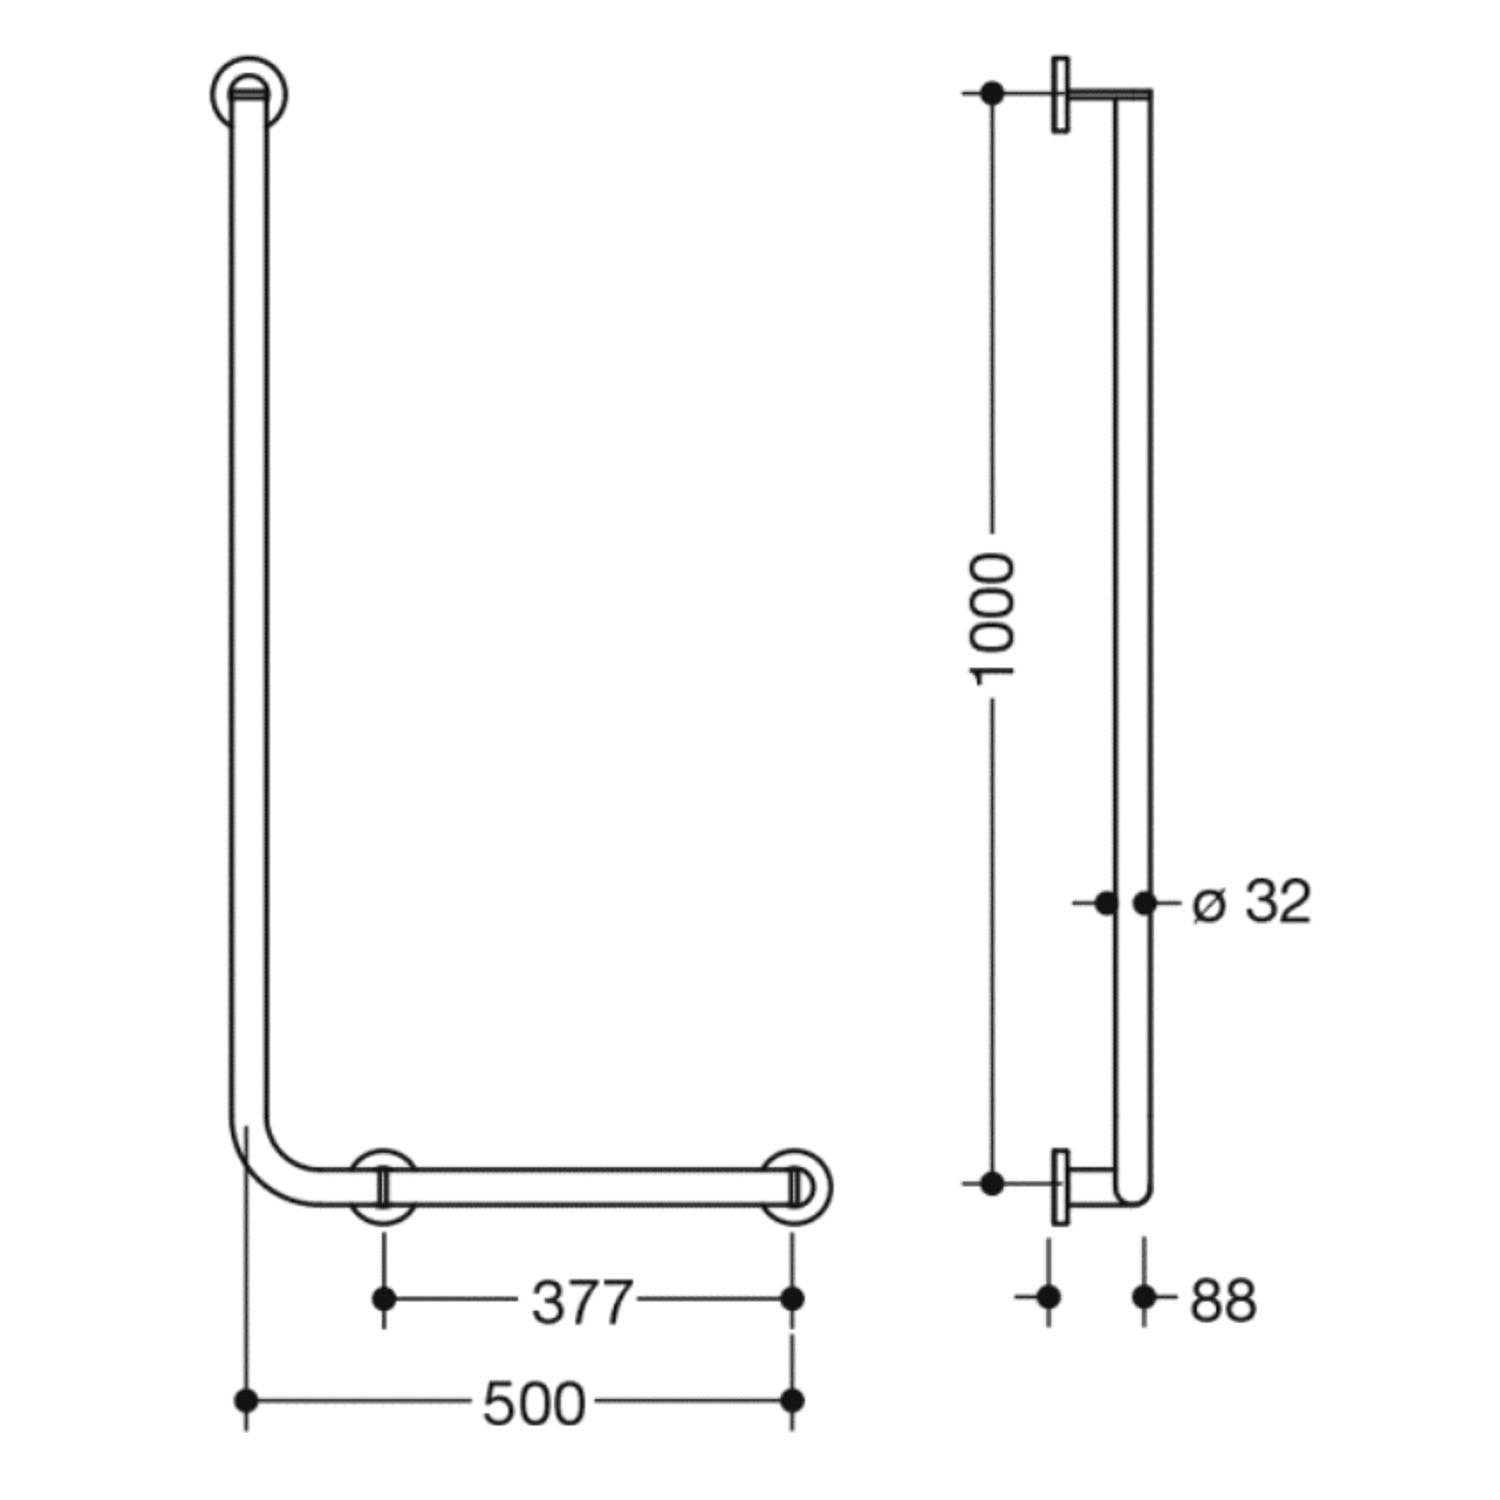 1000x500mm Right Handed Freestyle L Shaped Grab Rail with a chrome finish dimensional drawing